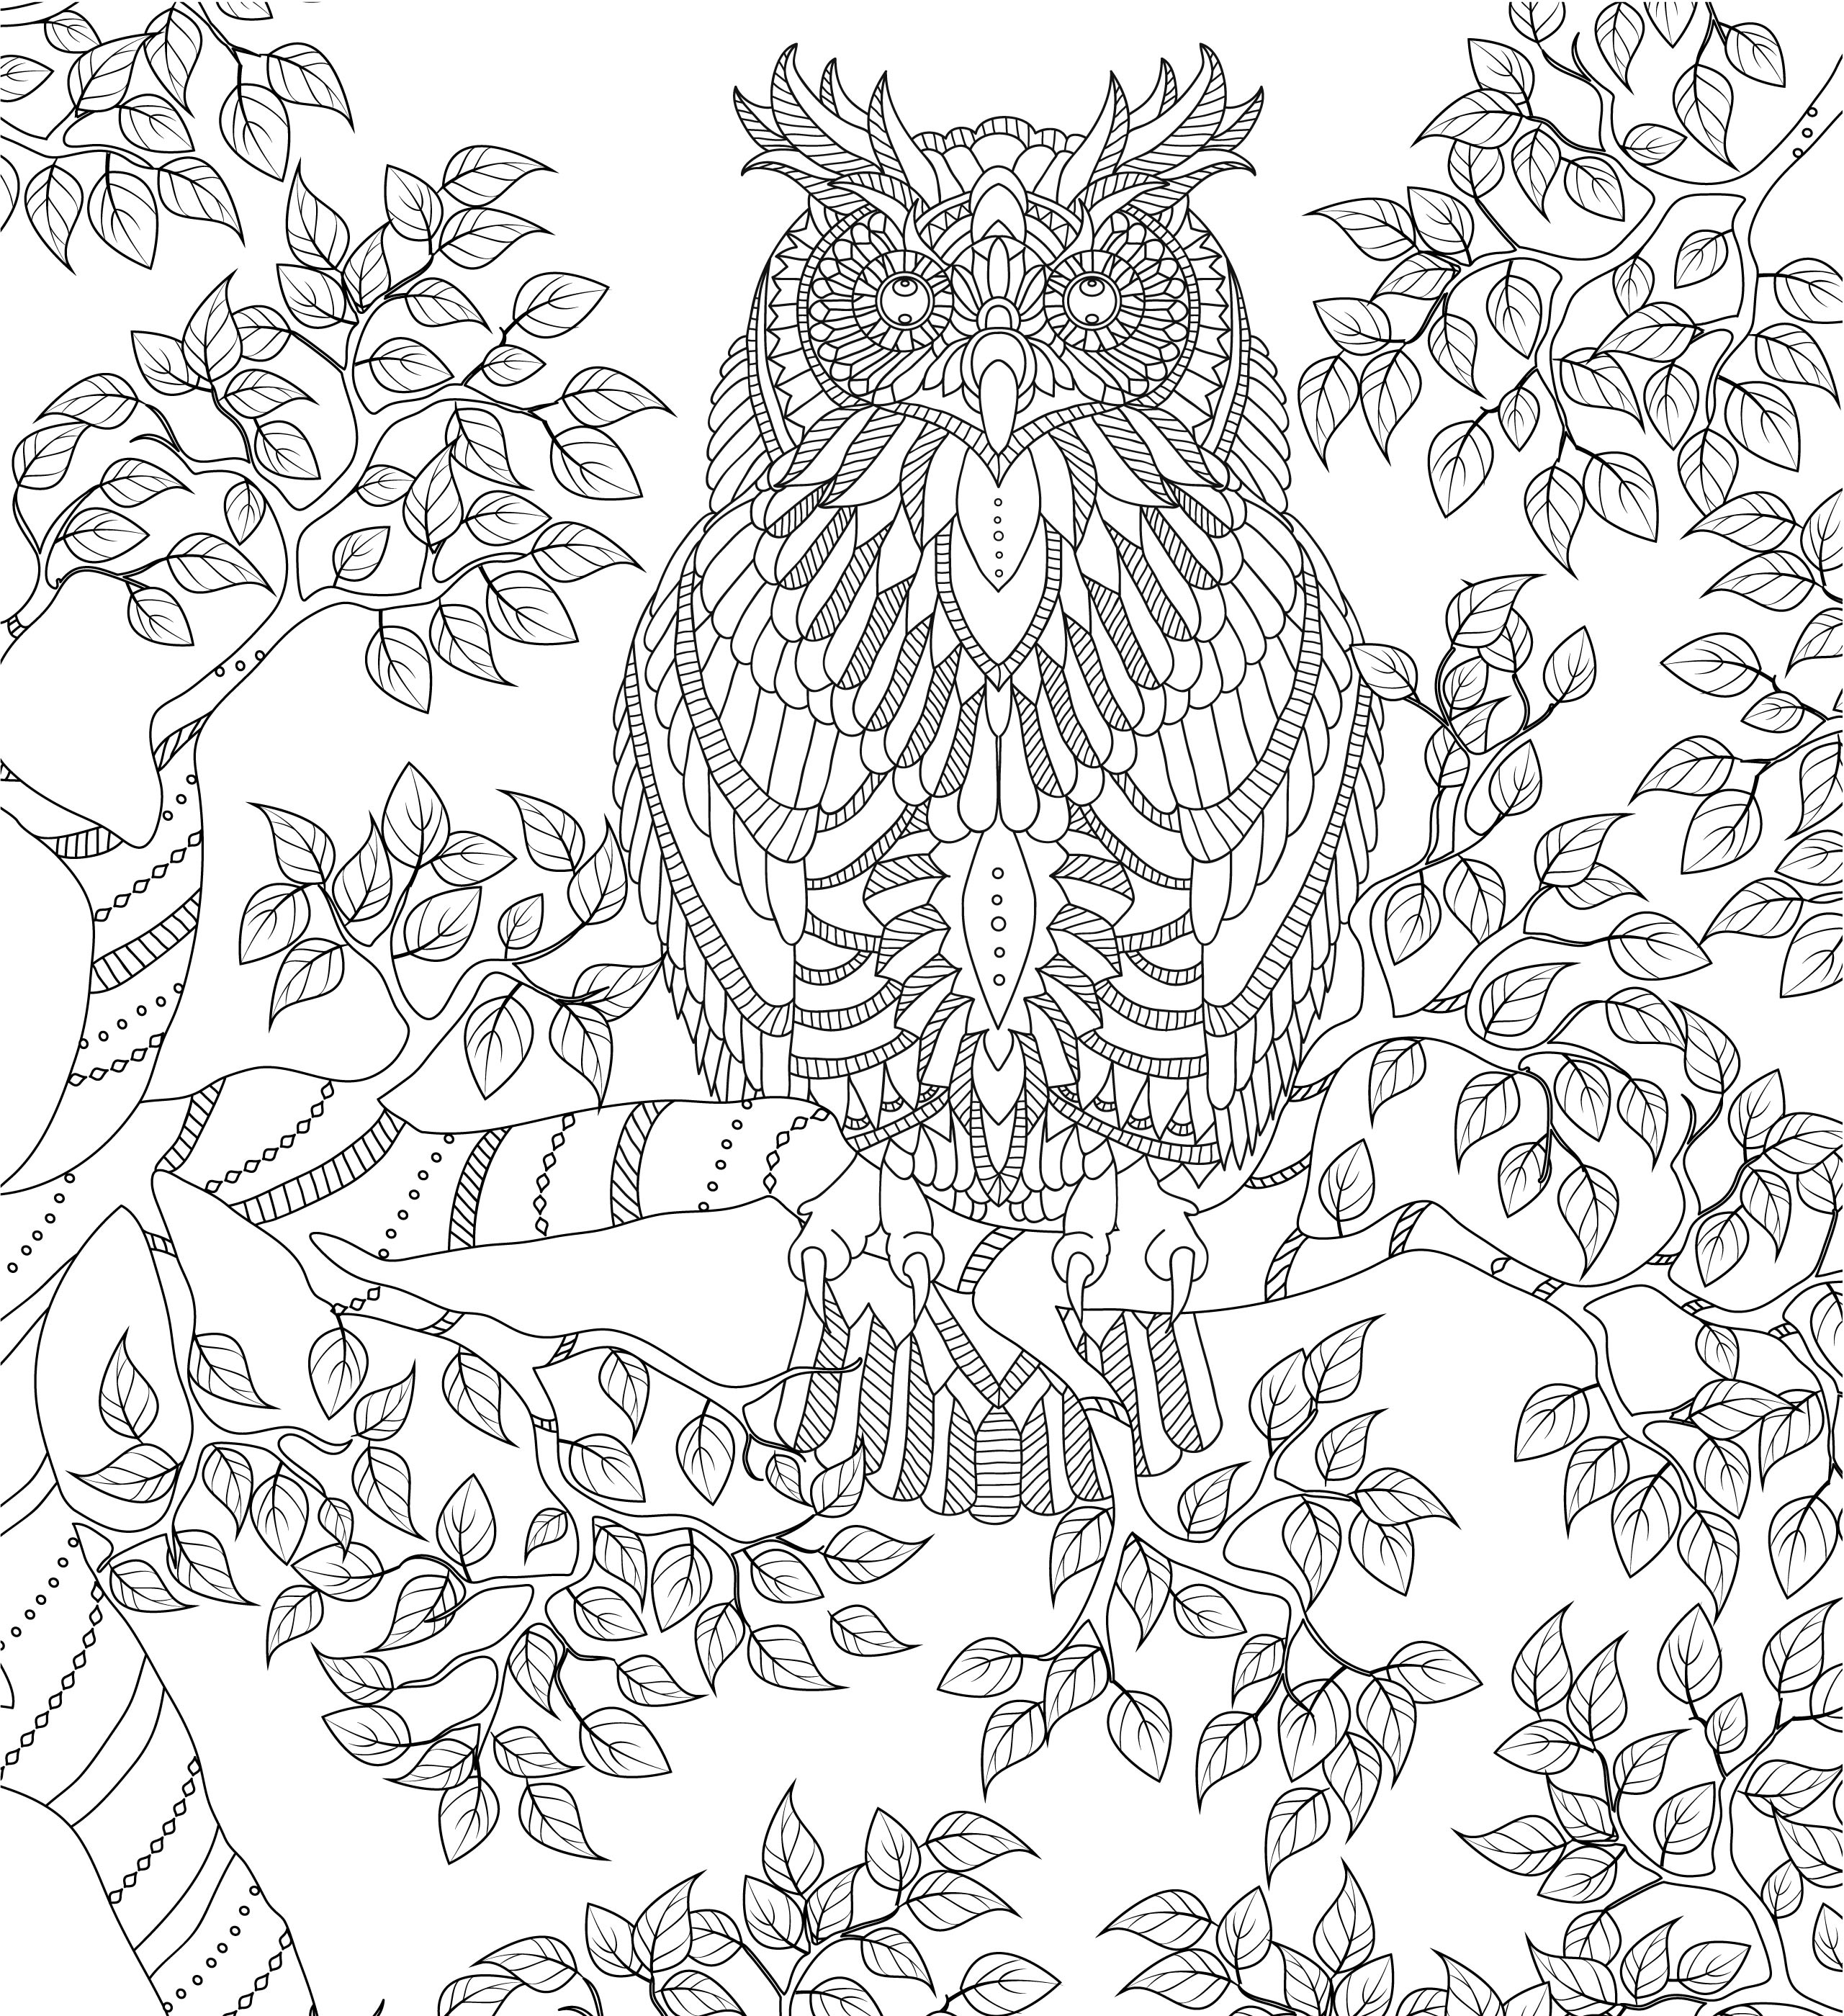 give you 18 already made detailed adult coloring book pages